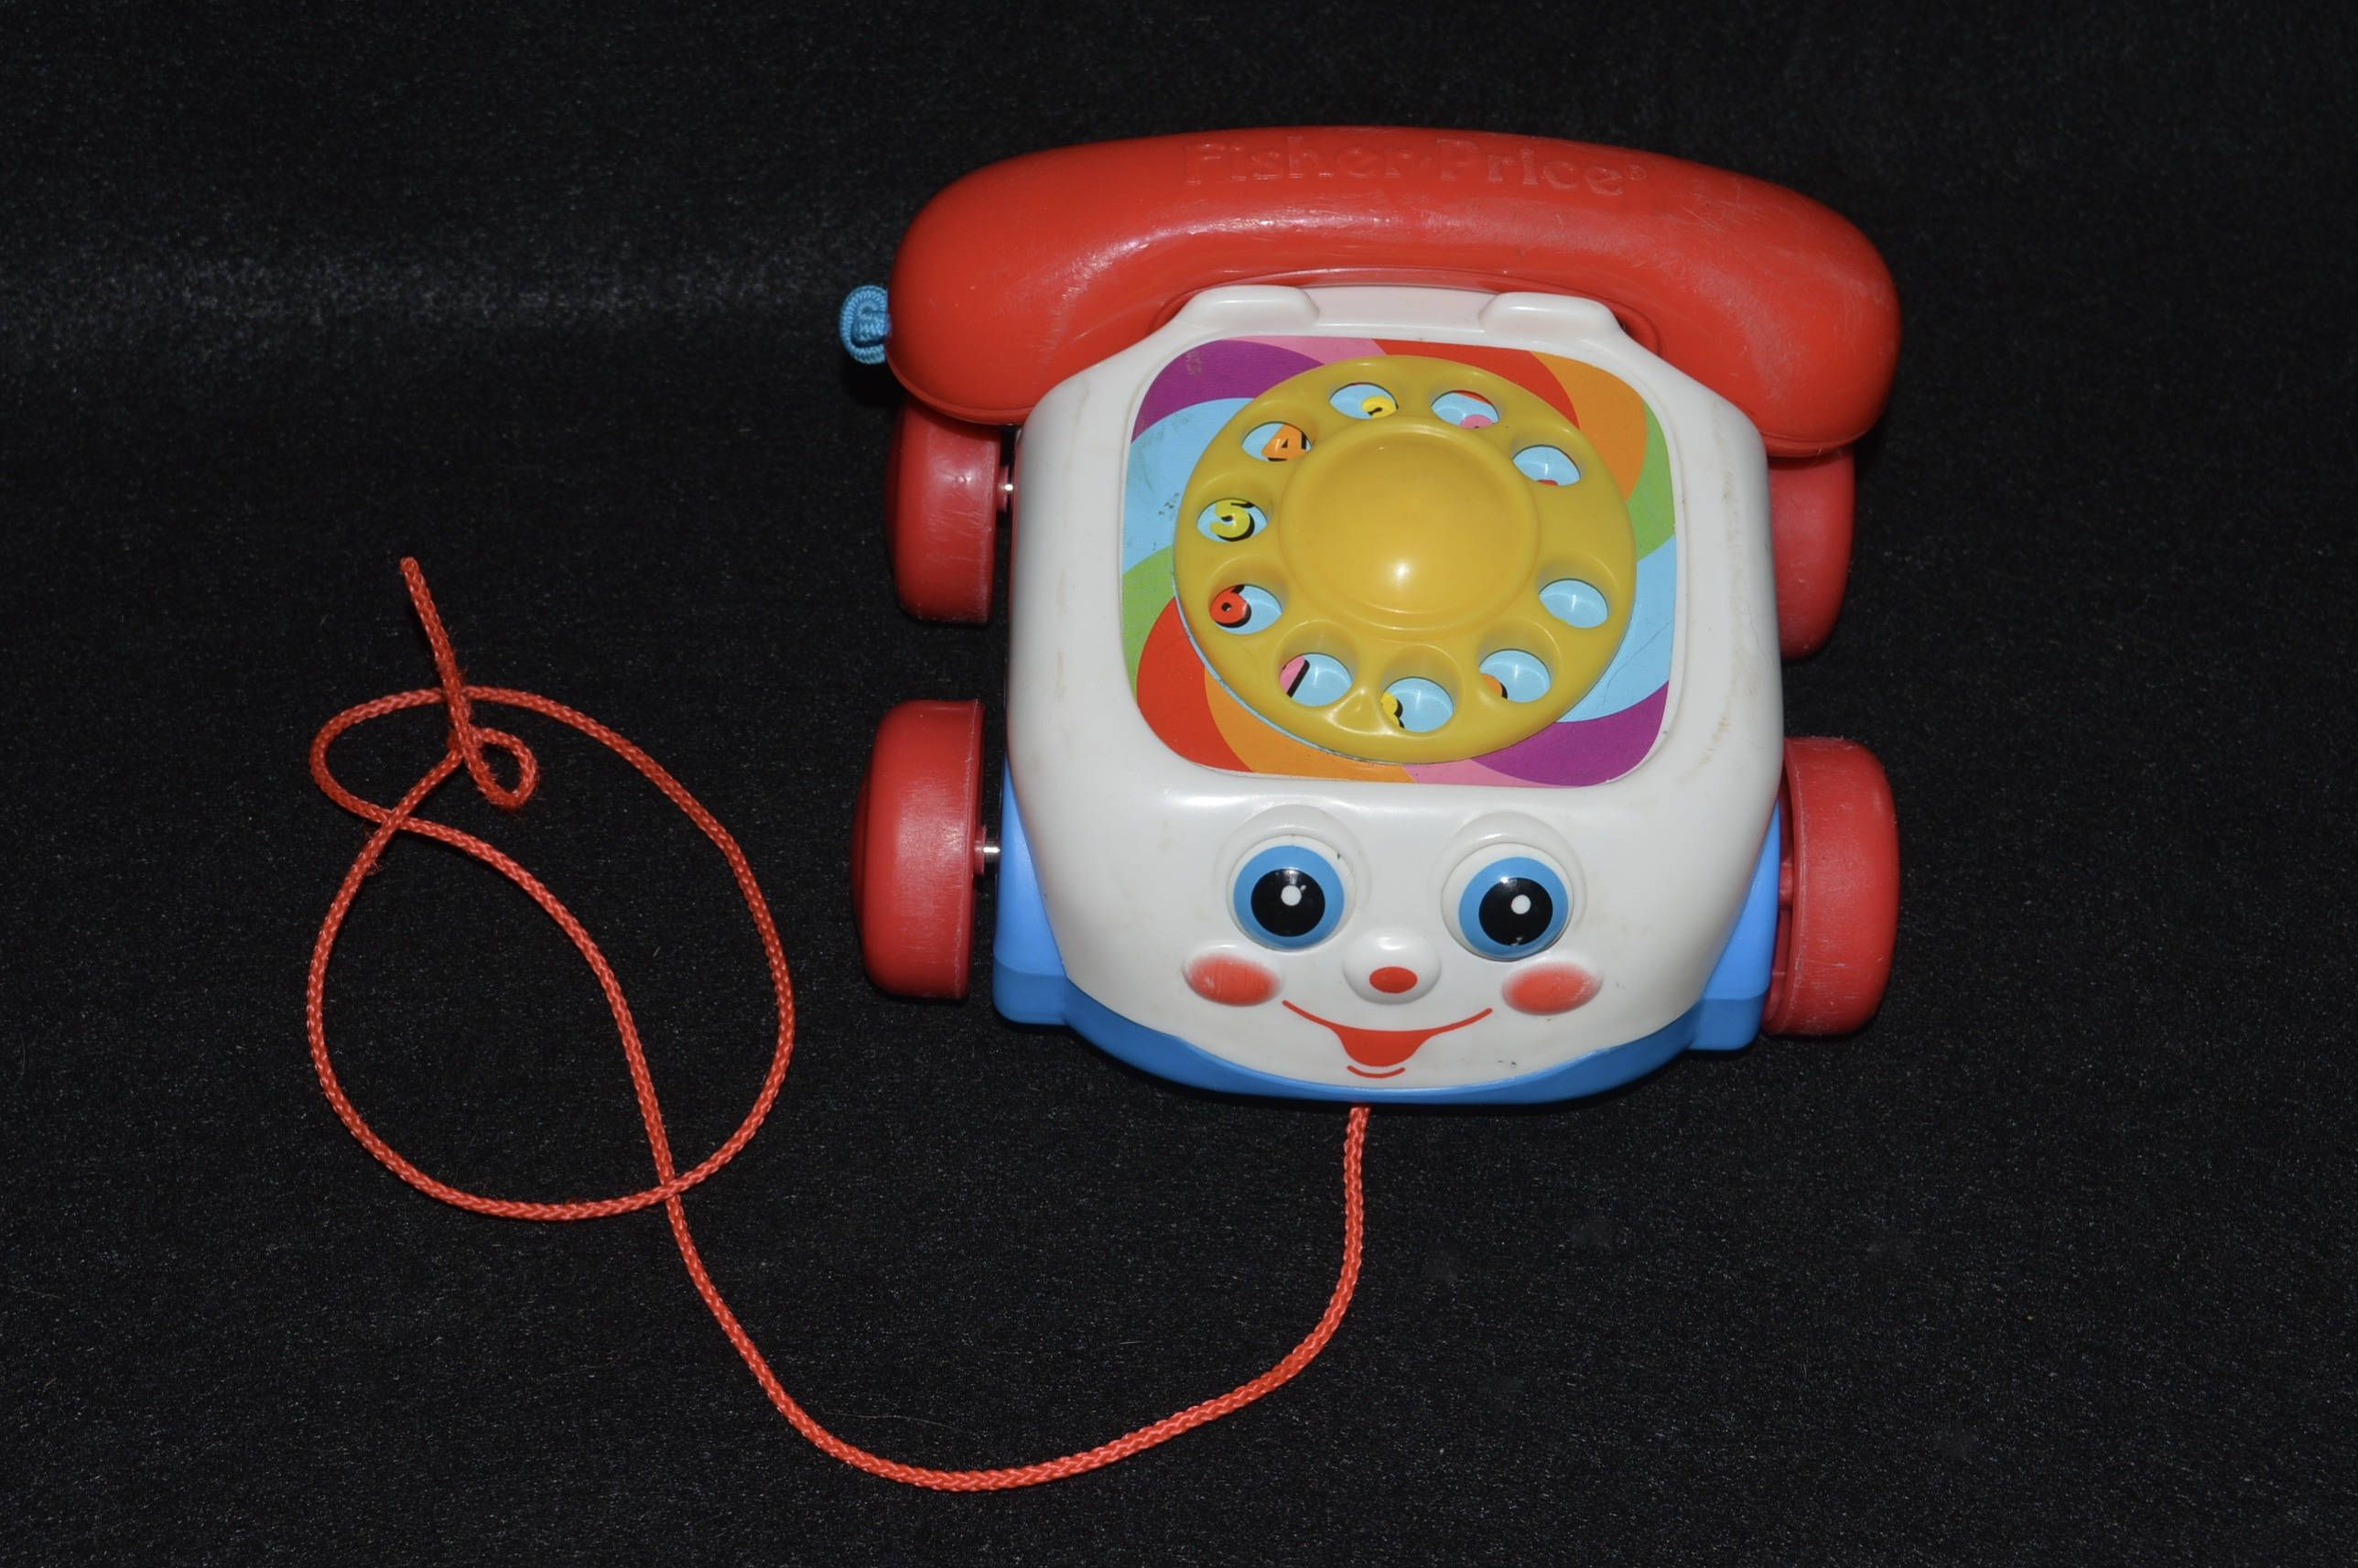 toy phone fisher price chatter box phone telephone toy child s pull toy vintage toys toy rotary phone wheeled phone phone toy by  [ 2576 x 1713 Pixel ]